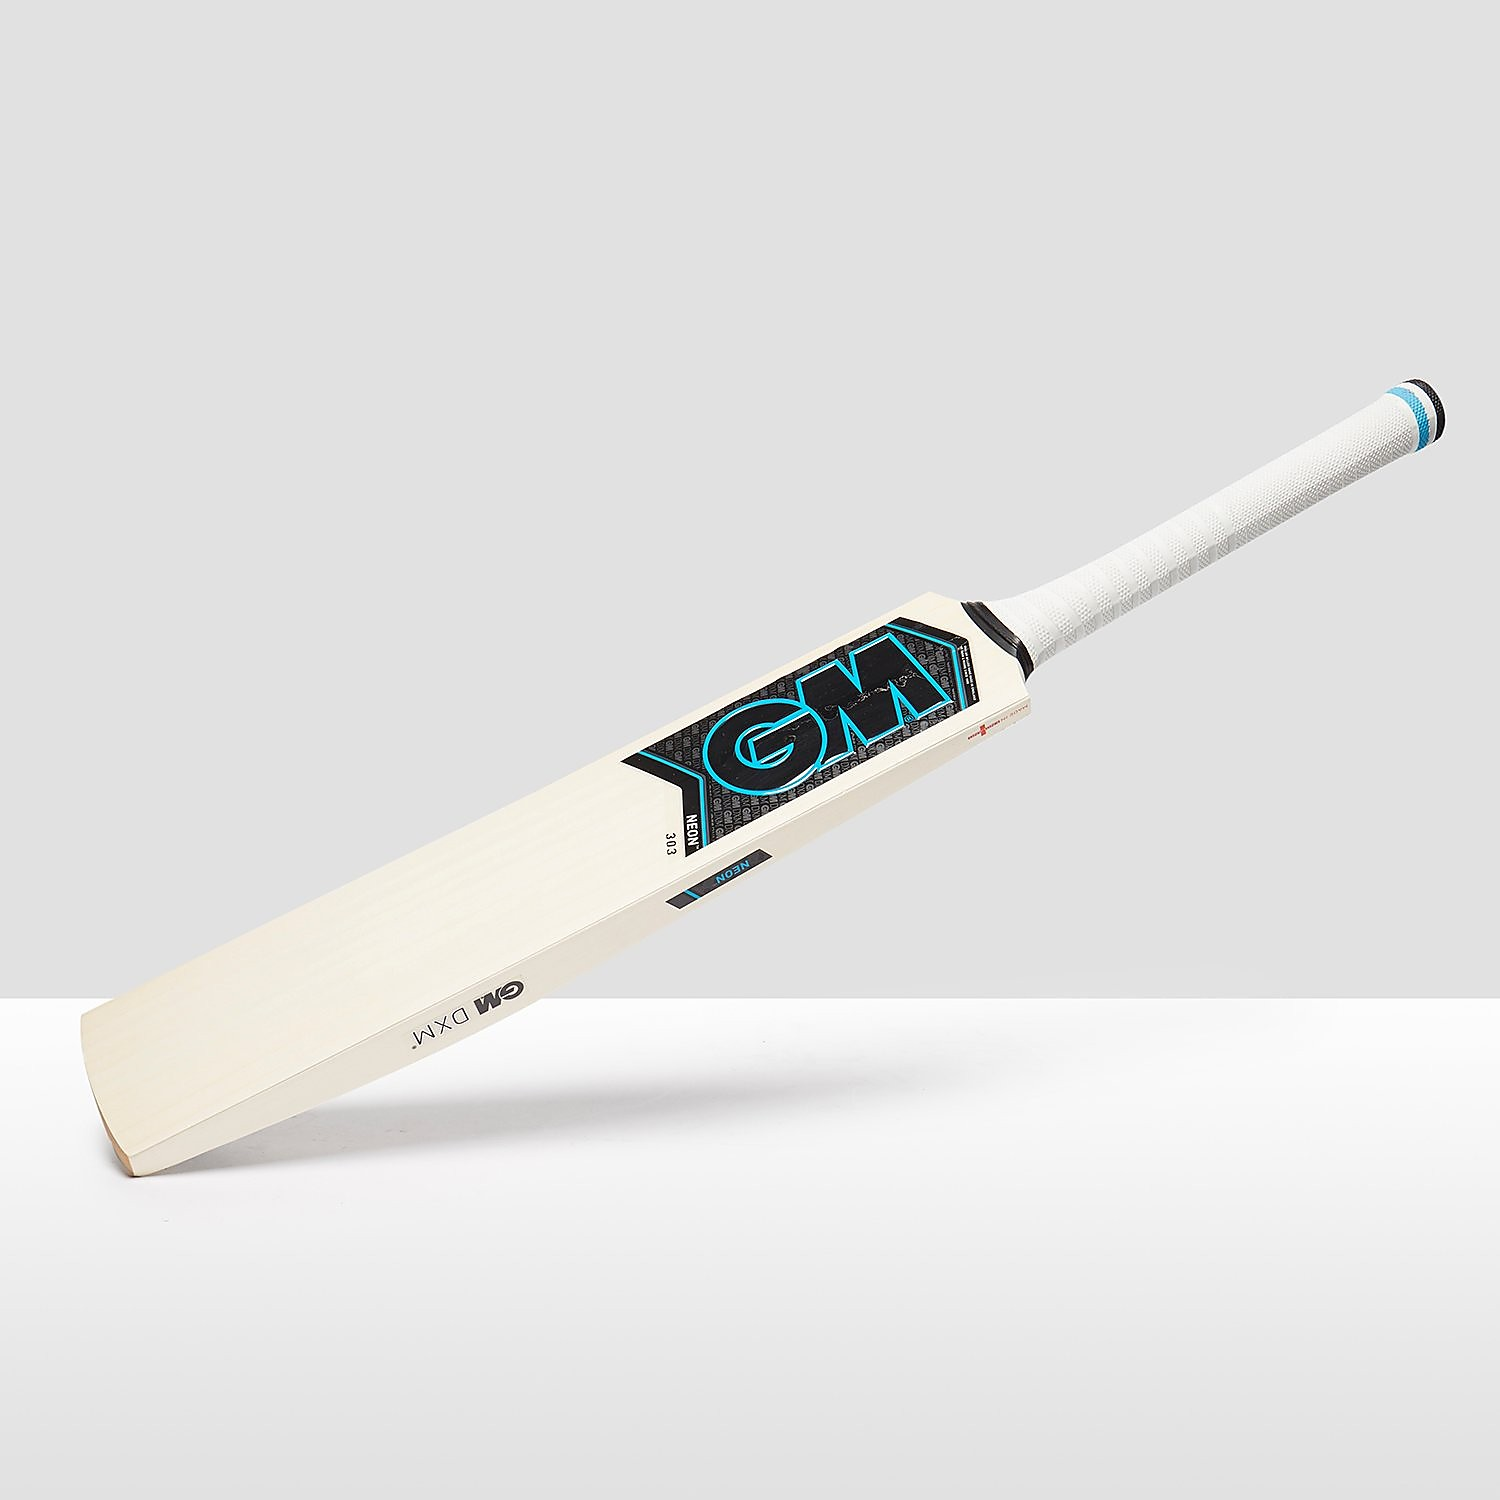 Gunn & Moore Neon 303 Men's Cricket Bat